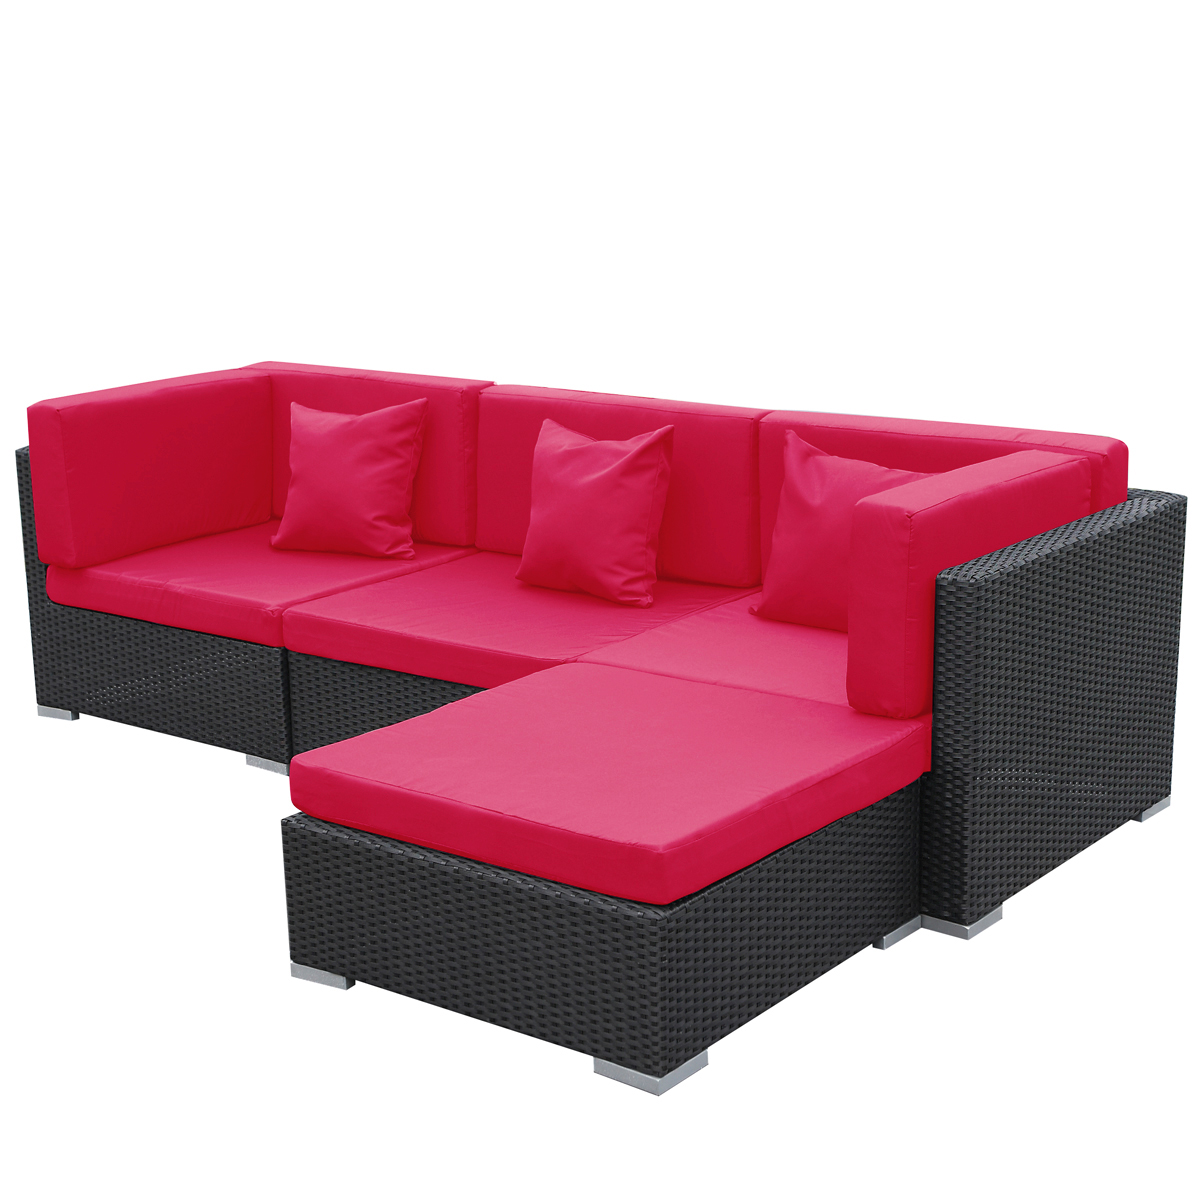 gartenm bel lounge sofa bergen ii schwarz rot gartenlounge set ebay. Black Bedroom Furniture Sets. Home Design Ideas